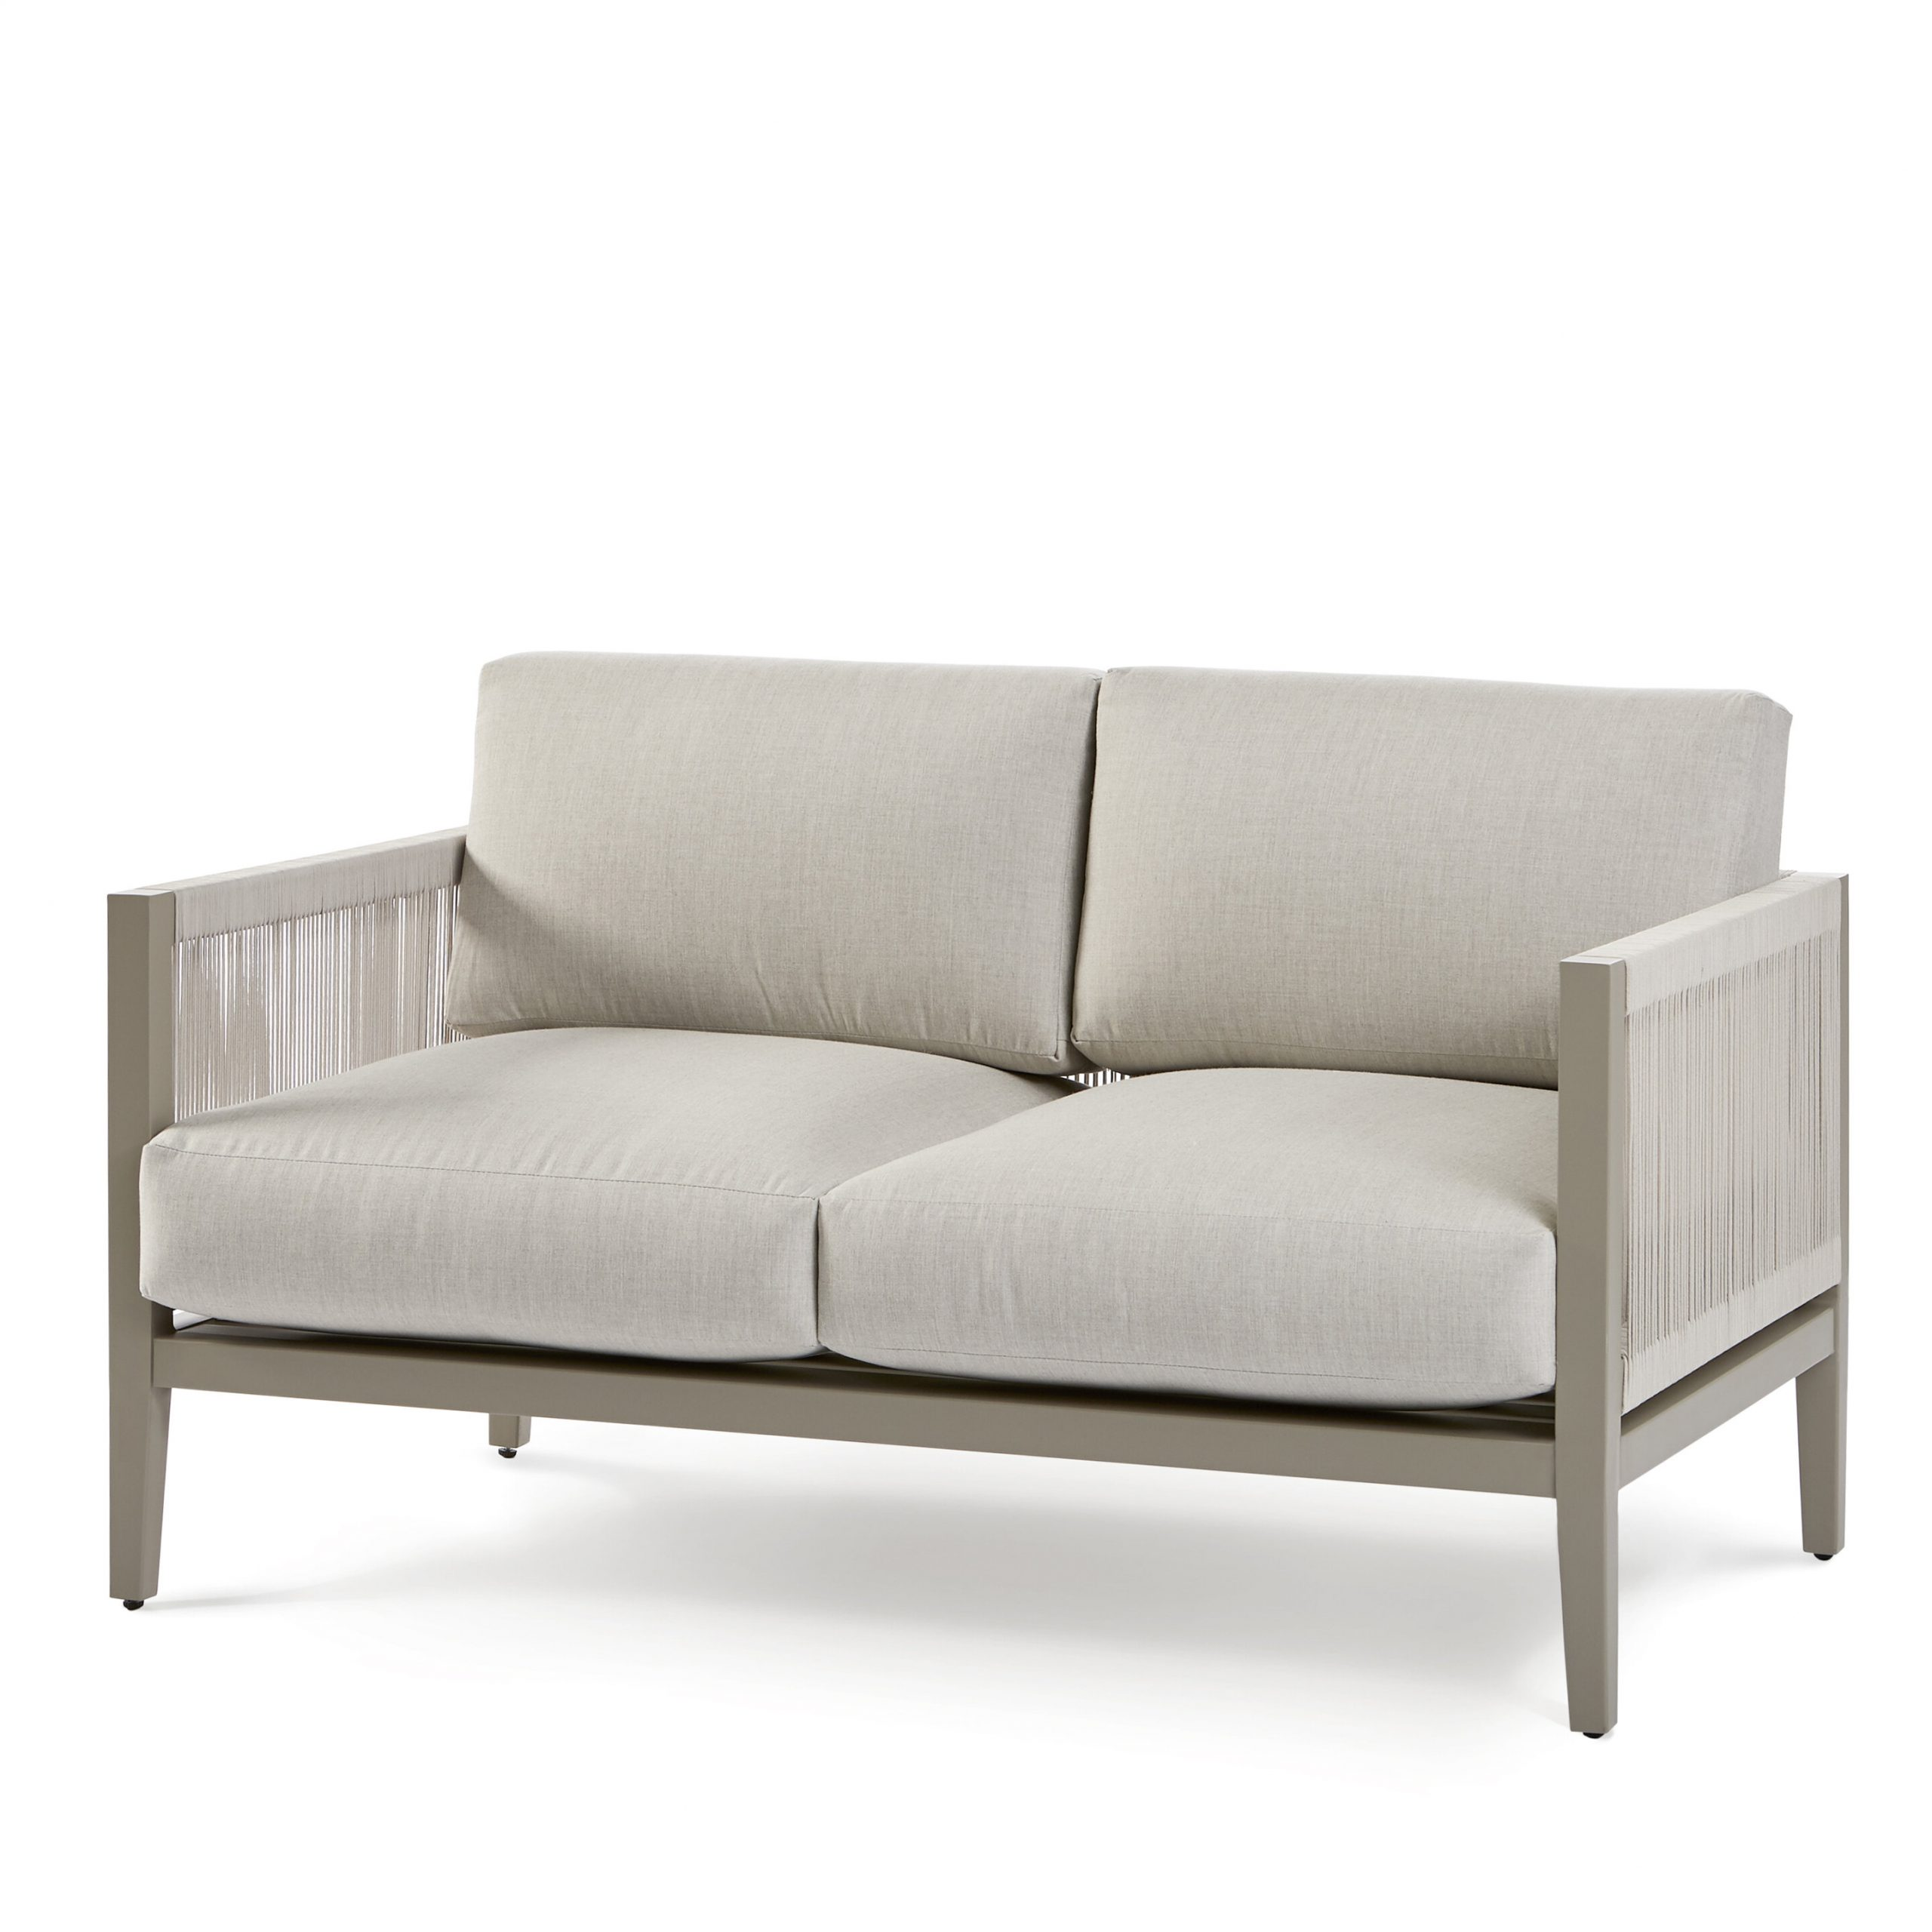 Well Liked Kari Loveseat With Sunbrella Cushions In Rossville Outdoor Patio Sofas With Cushions (View 24 of 25)